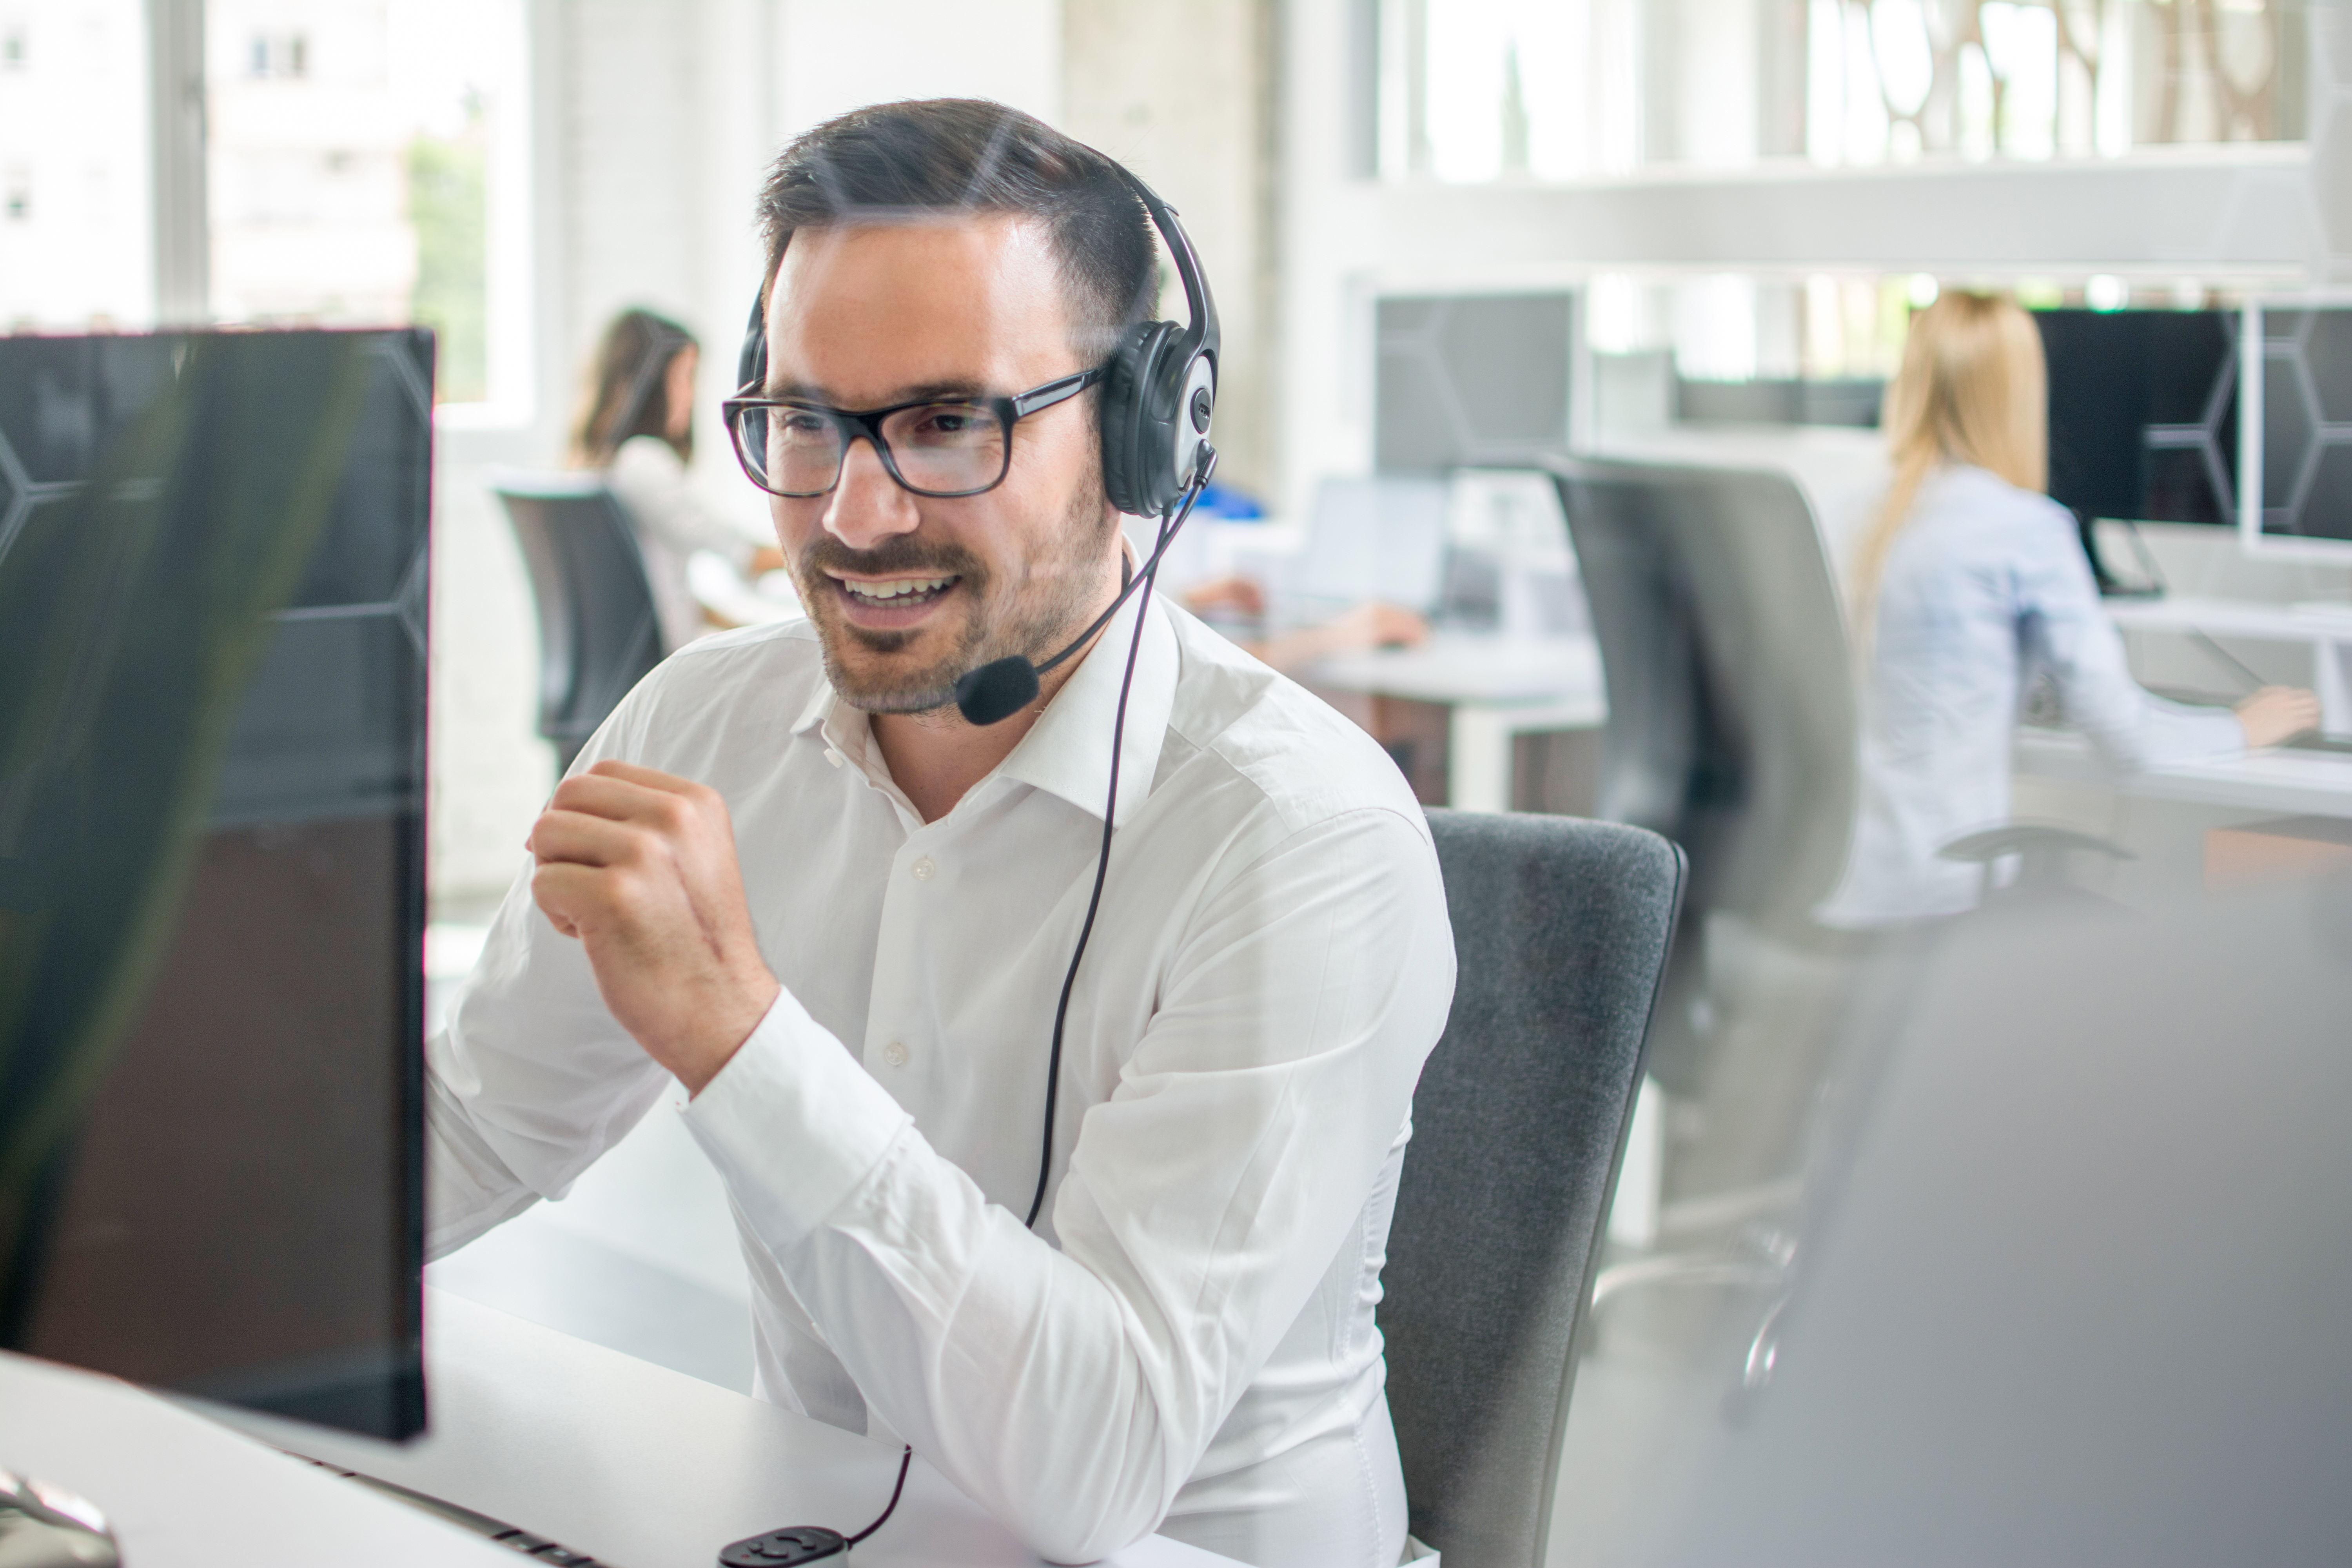 Customer service agent smiling on phone in office